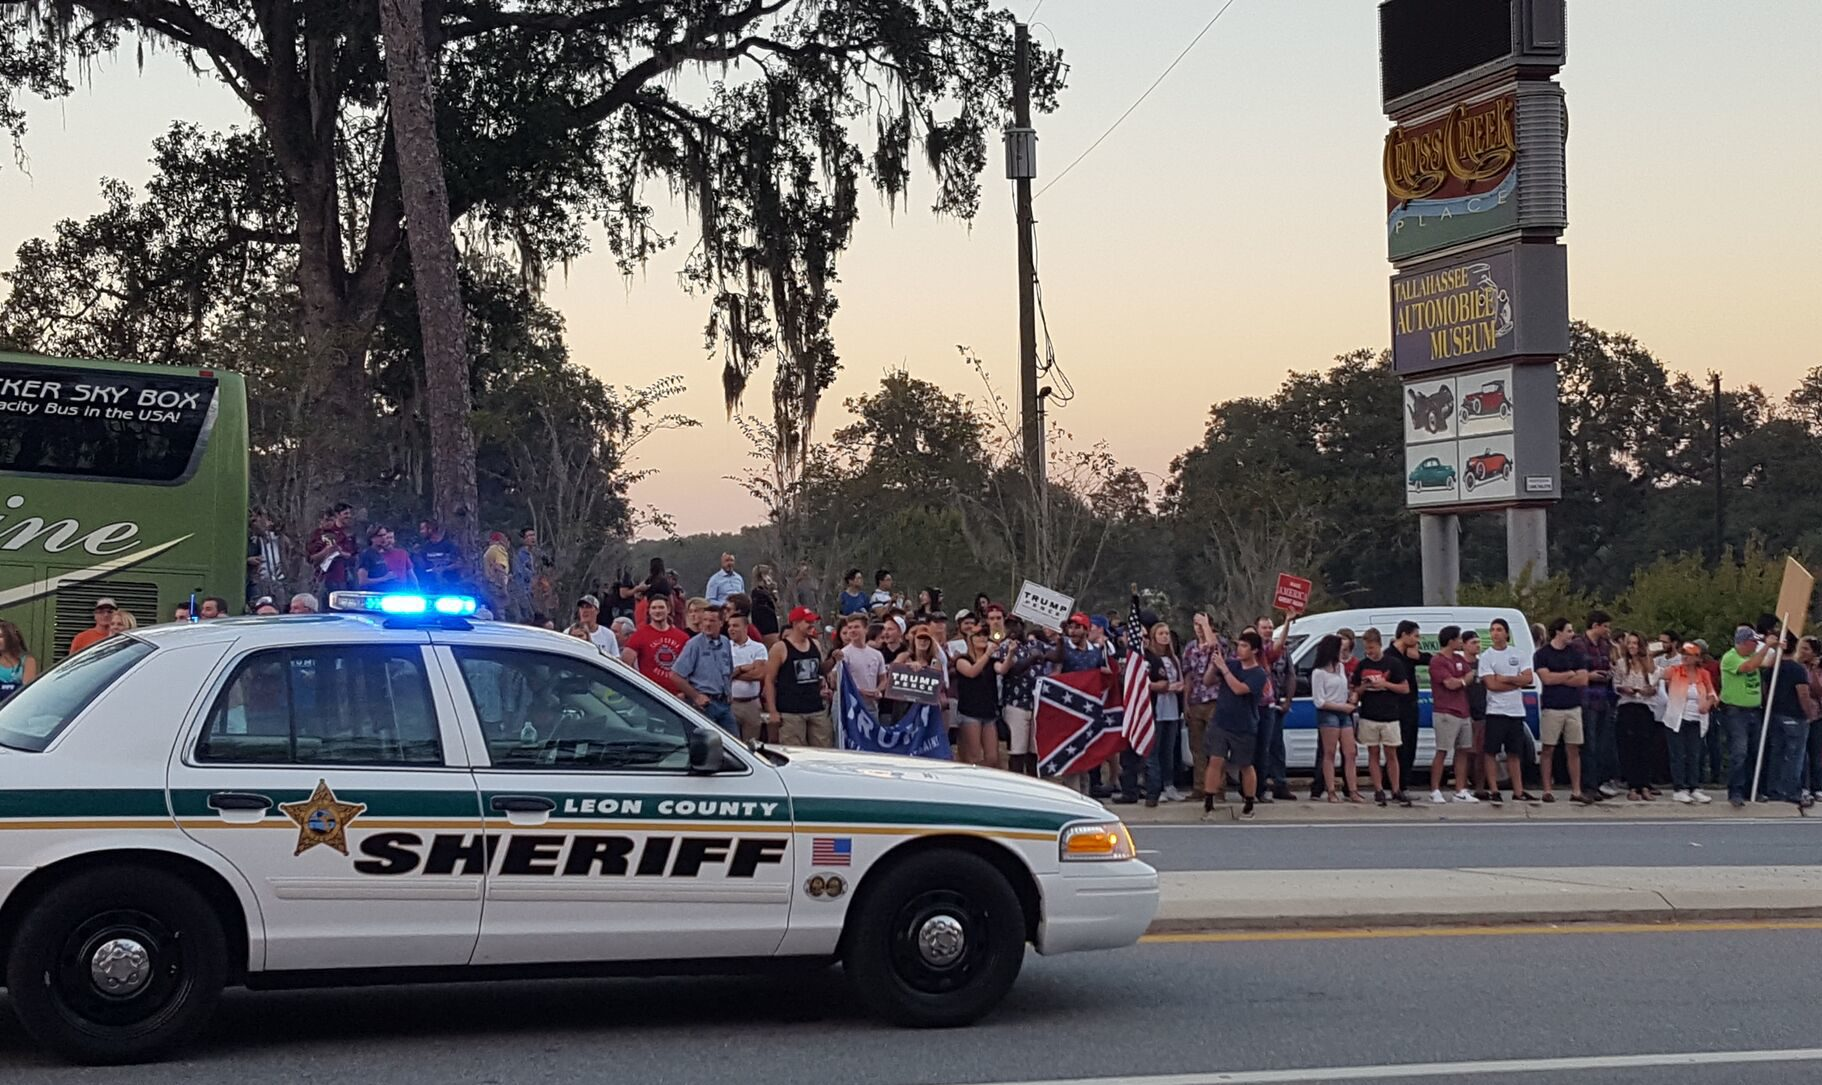 A crowd of trump supporters counter-protest the protesters across the street.